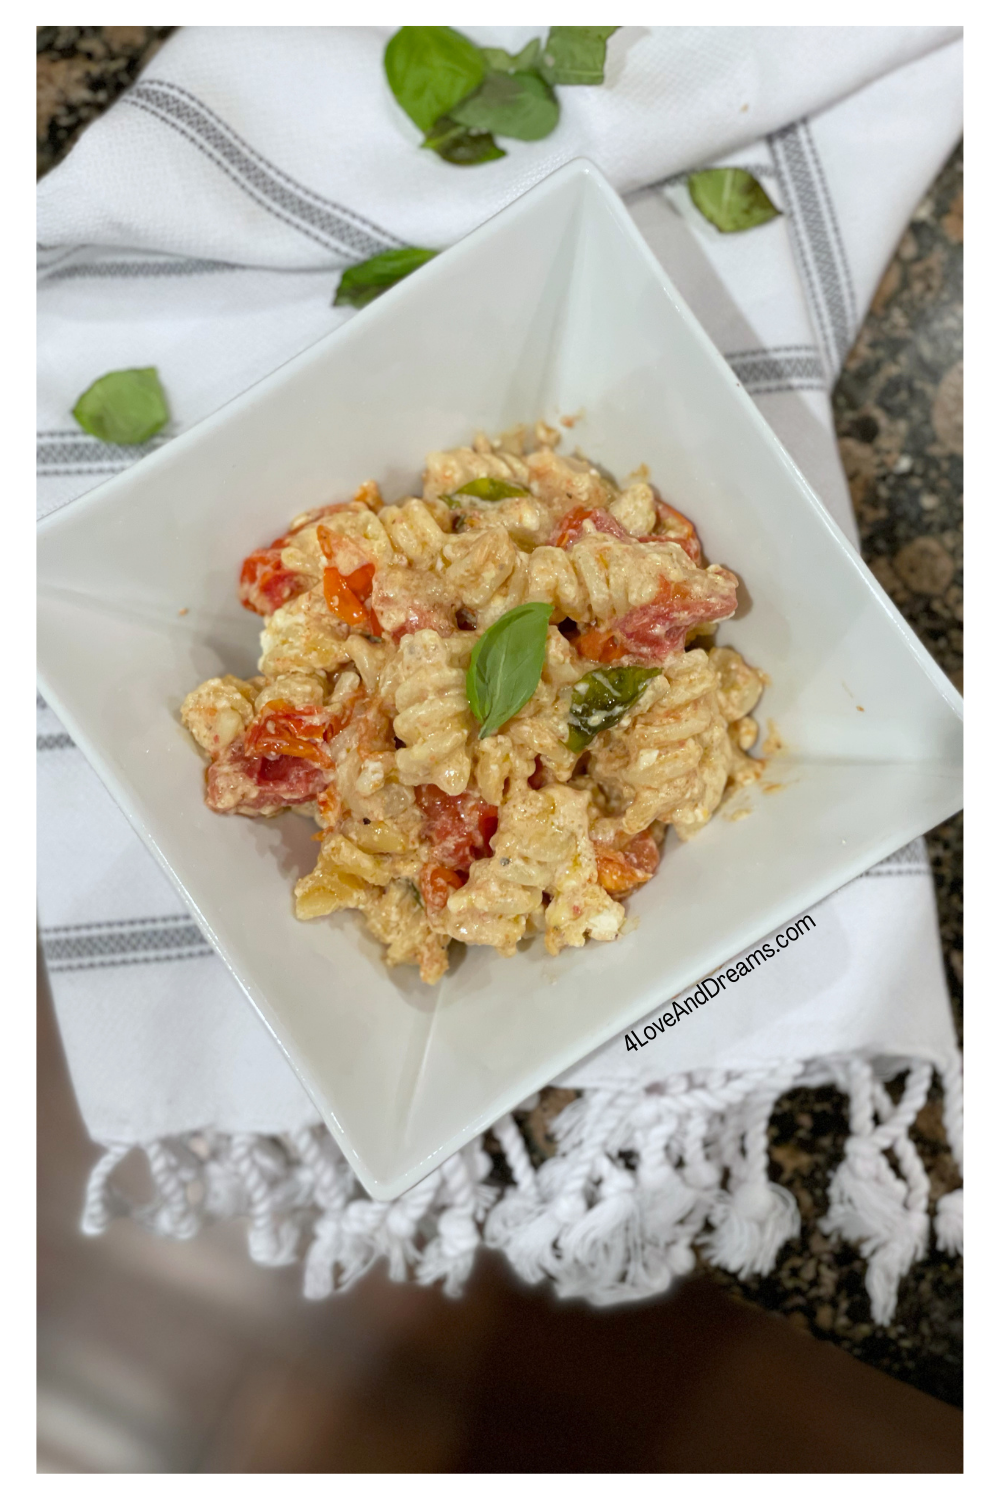 baked feta pasta from tik Tok. Italian pasta from tik Tok. easy weeknight meals. company is coming easy meal. baked feta and tomato pasta. baked feta pasta TikTok. baked feta with tomatoes